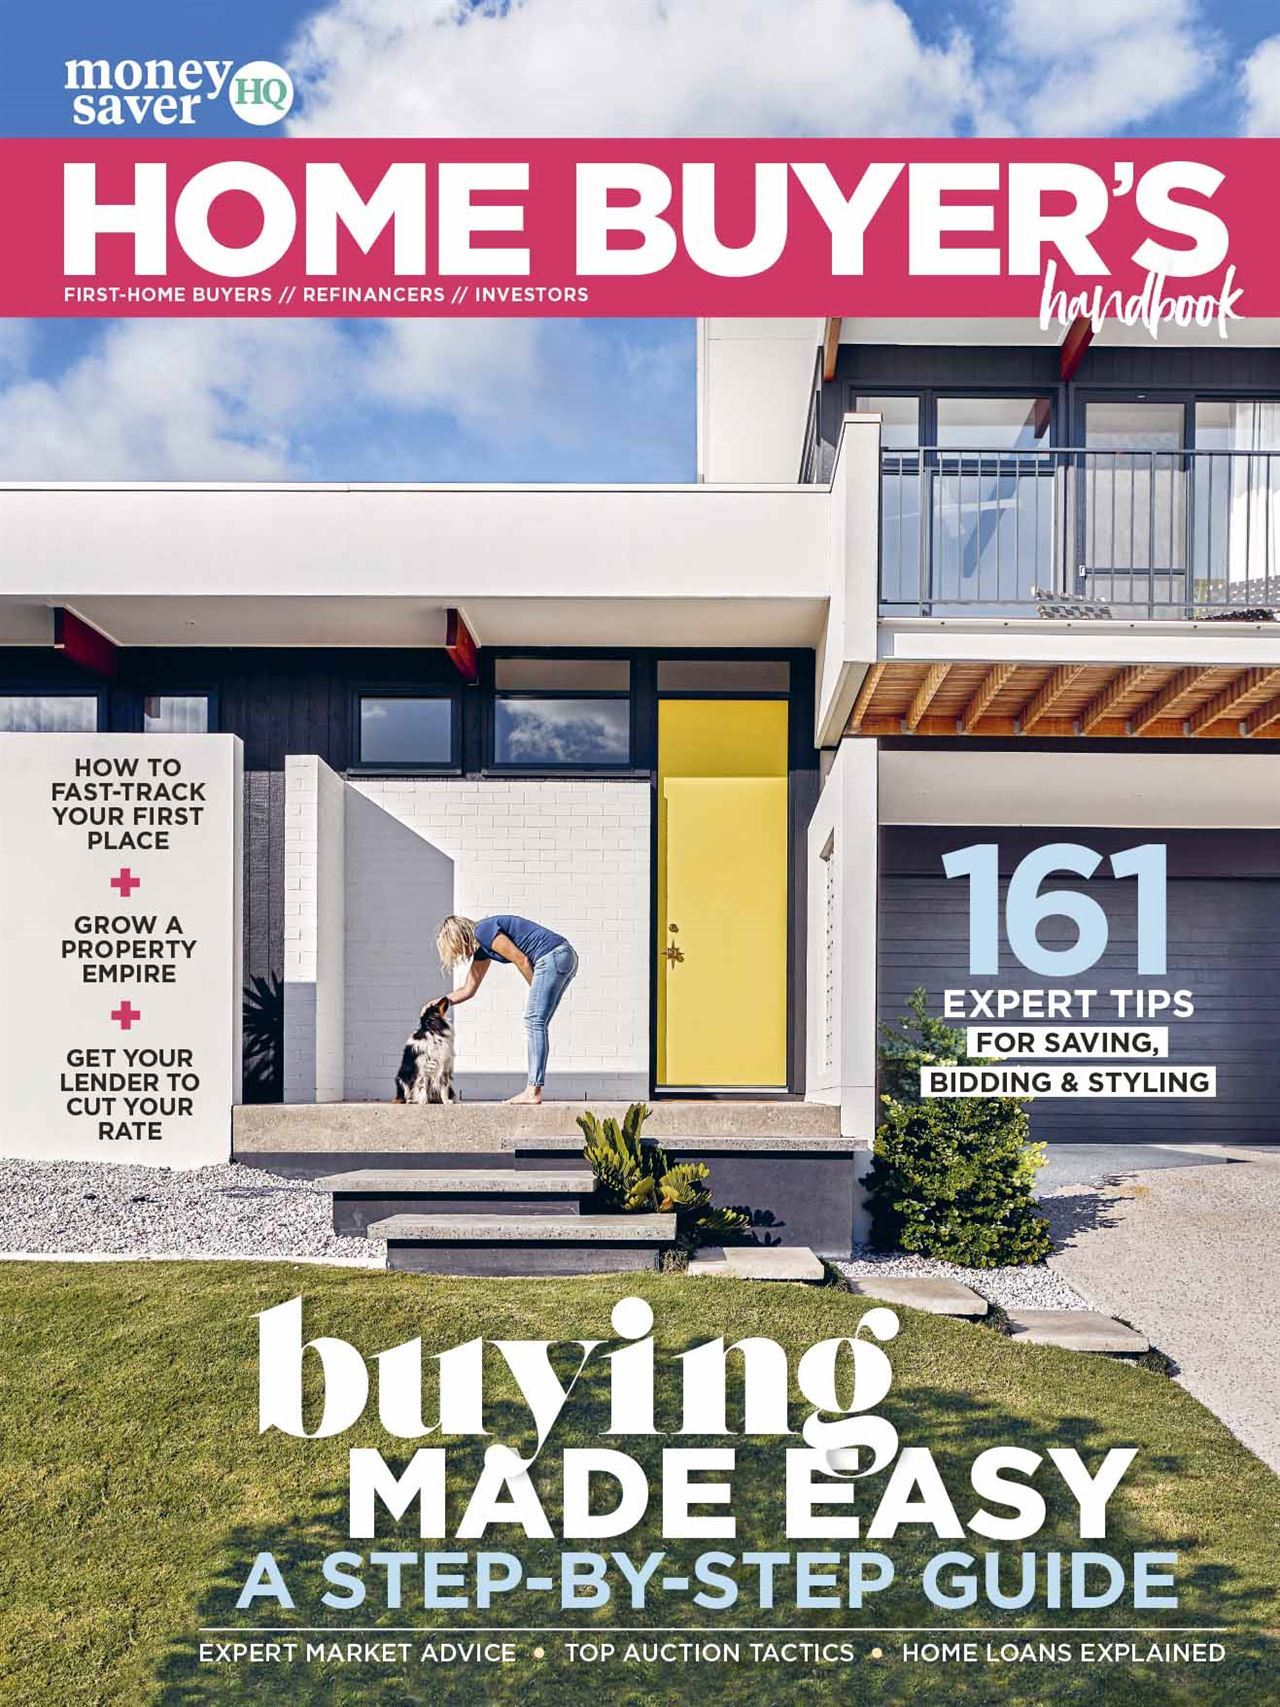 Money Saver HQ - Home Buyer's Handbook